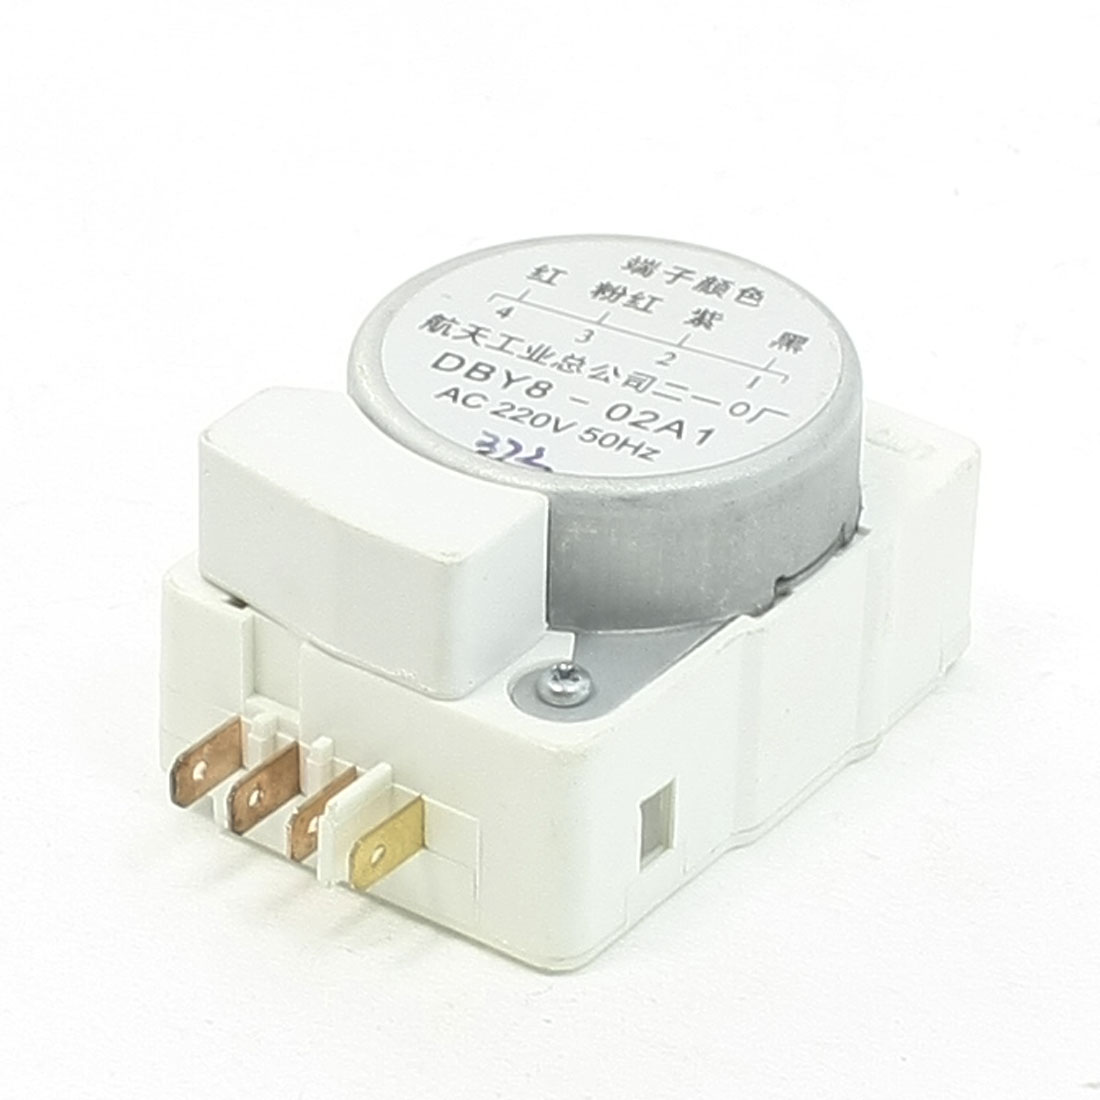 Marked 4 Pins DBY8-02A1 Refrigerator Defrost Timer Control AC 220V 50Hz